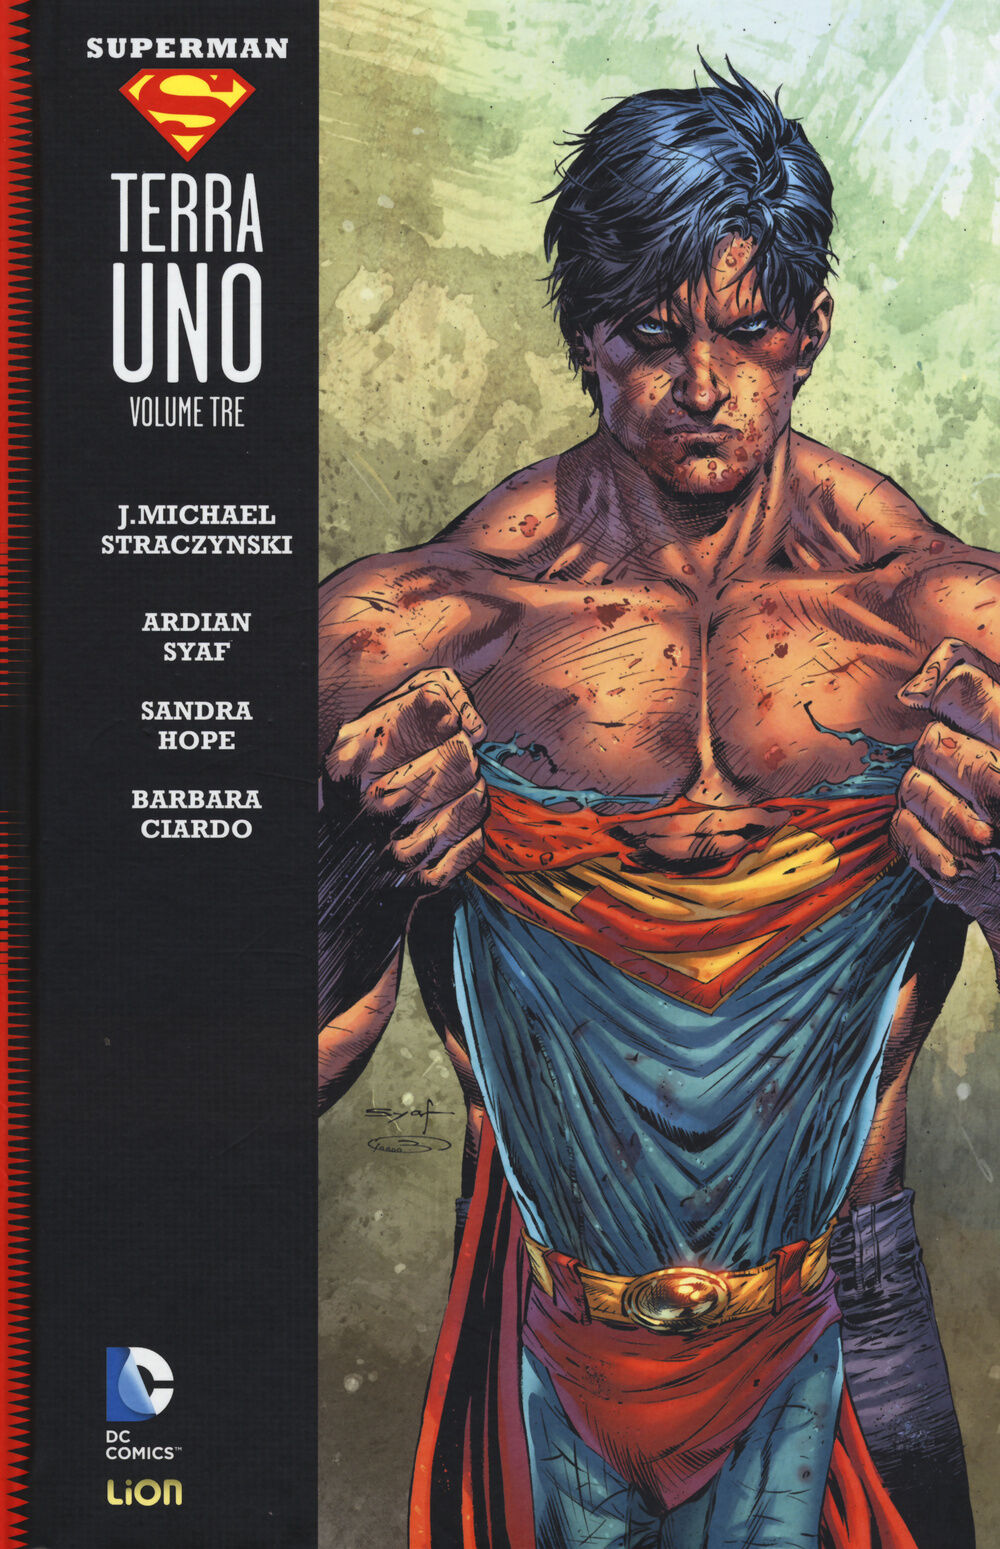 Terra uno. Superman. Vol. 3